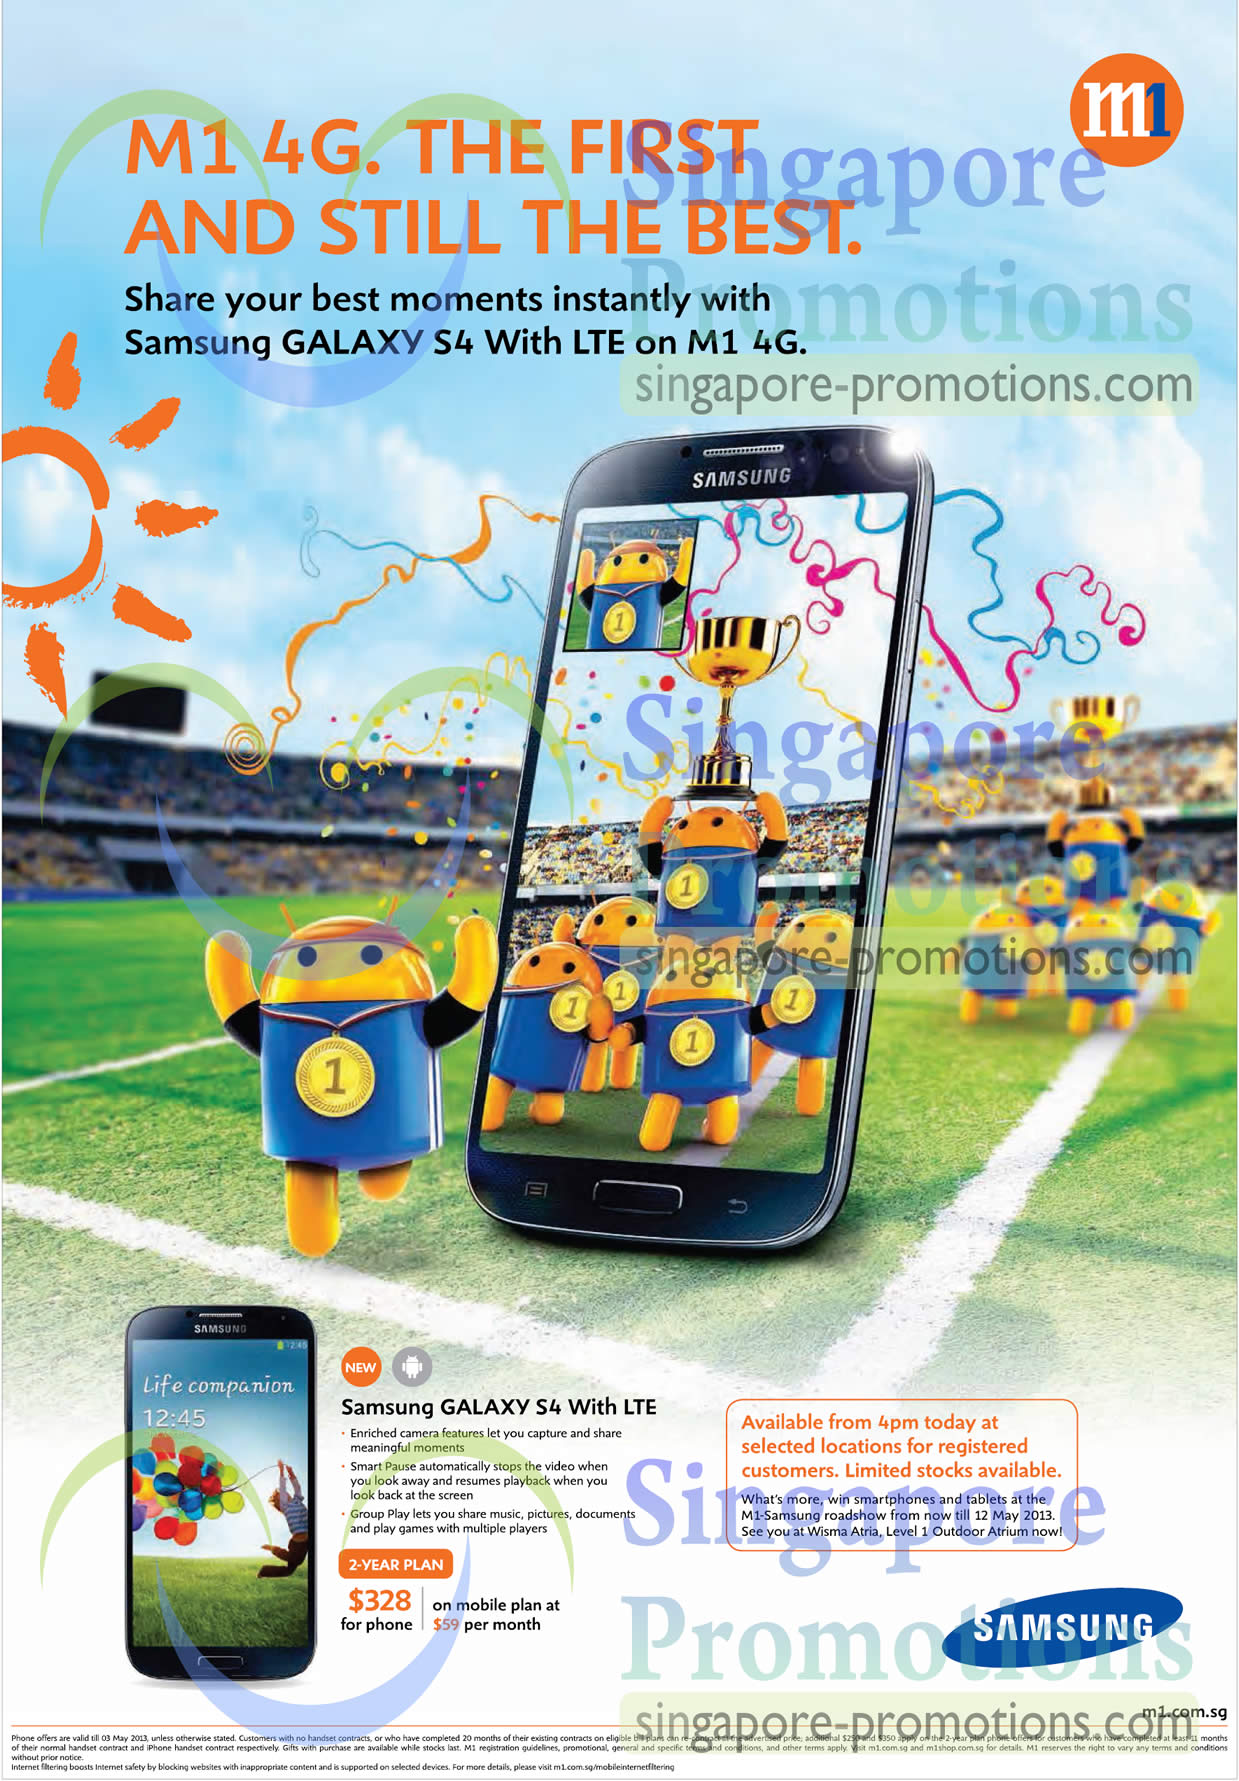 Samsung Galaxy S4 with LTE